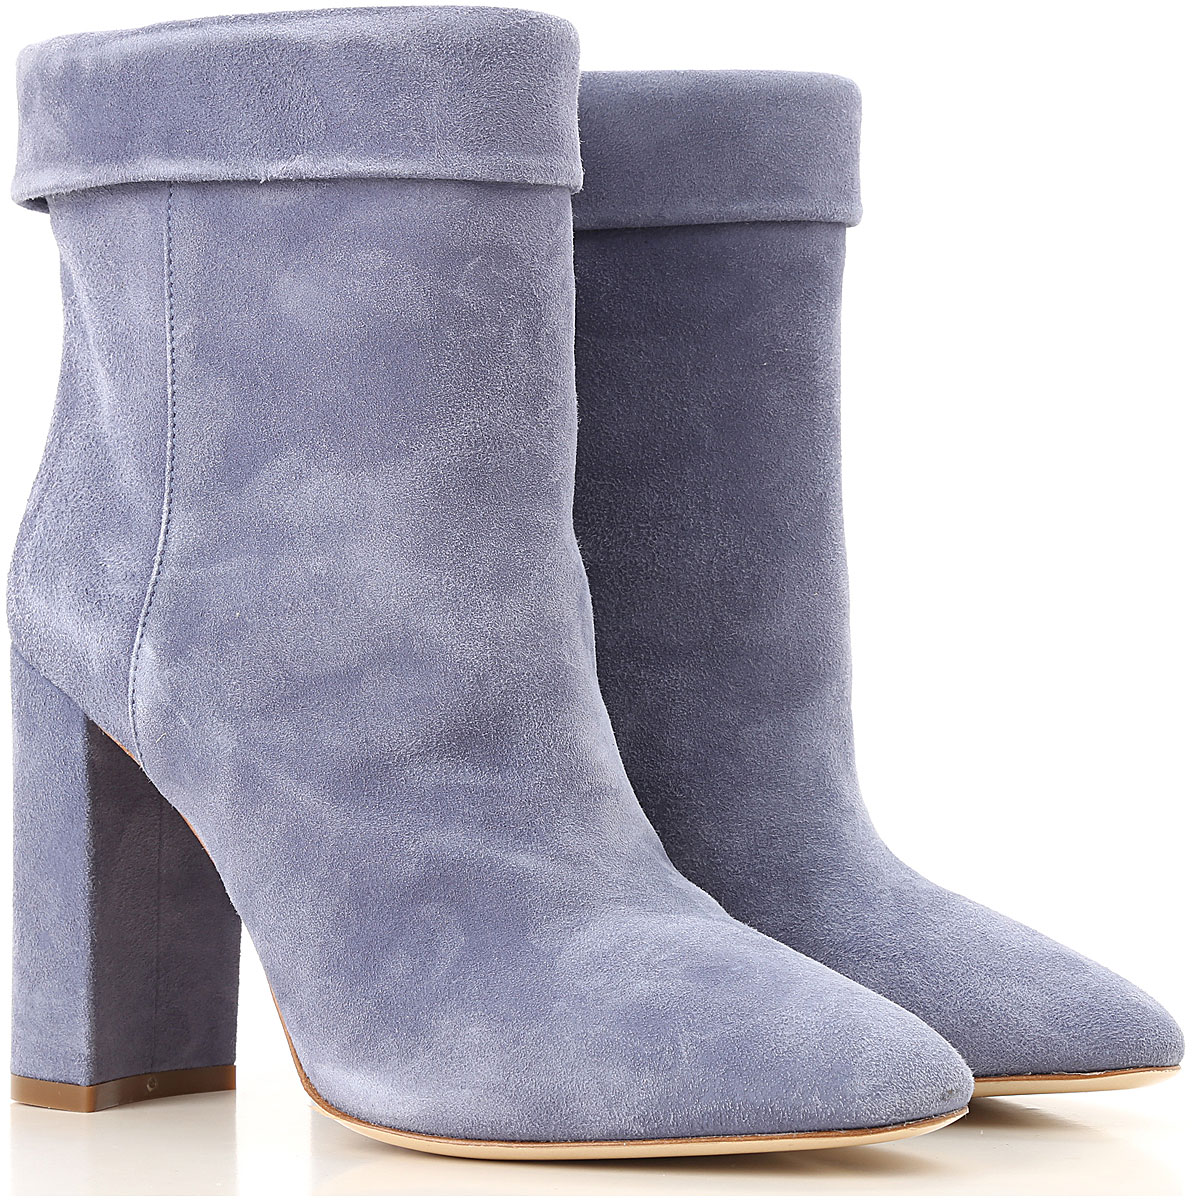 Image of Twin Set by Simona Barbieri Boots for Women, Booties, Azure, suede, 2017, 10 11 5 6 8 8.5